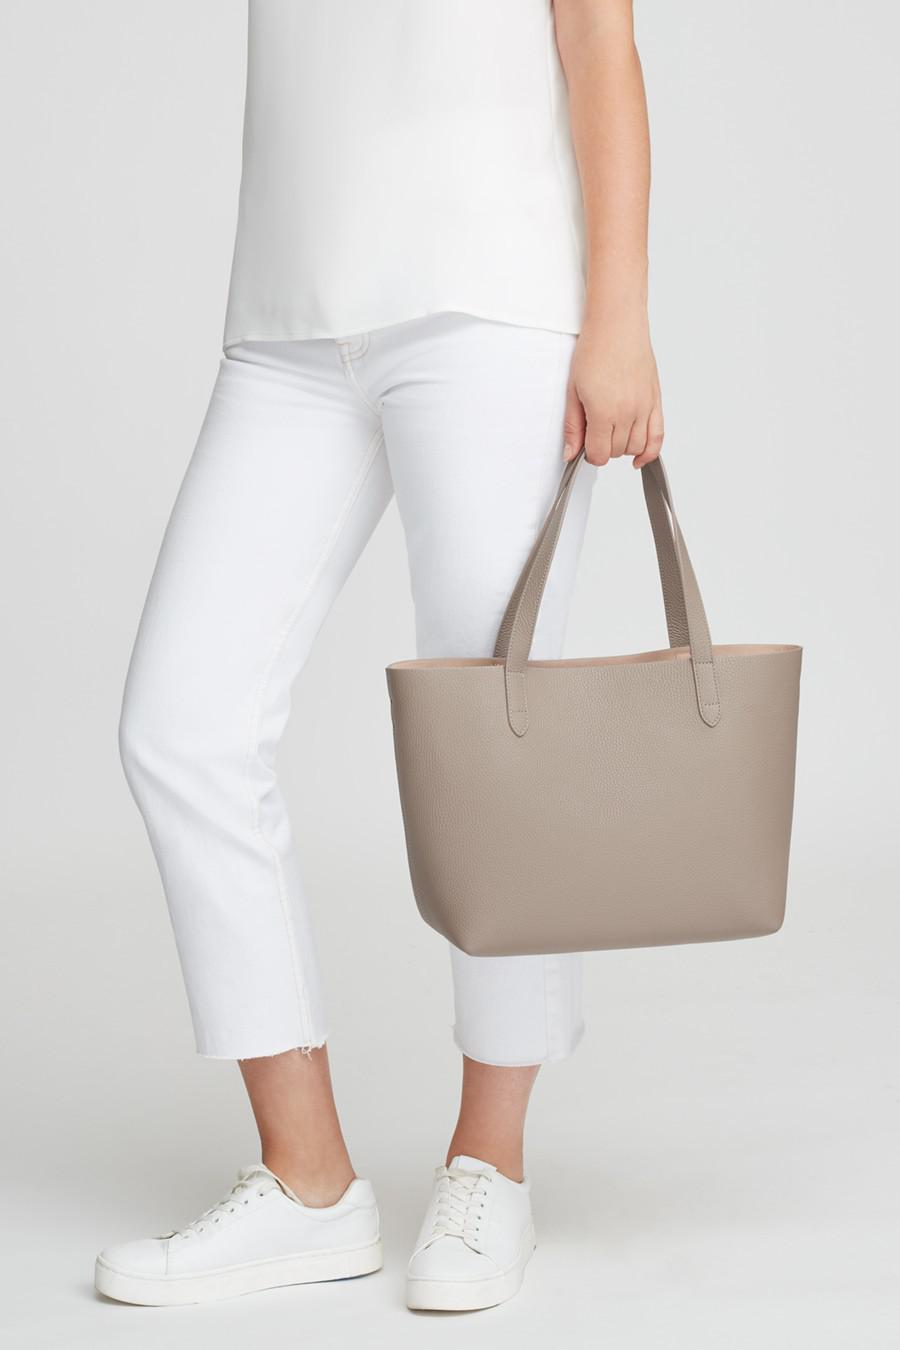 Women's Small Structured Leather Tote Bag in Stone/Blush Pink   Pebbled Leather by Cuyana 7